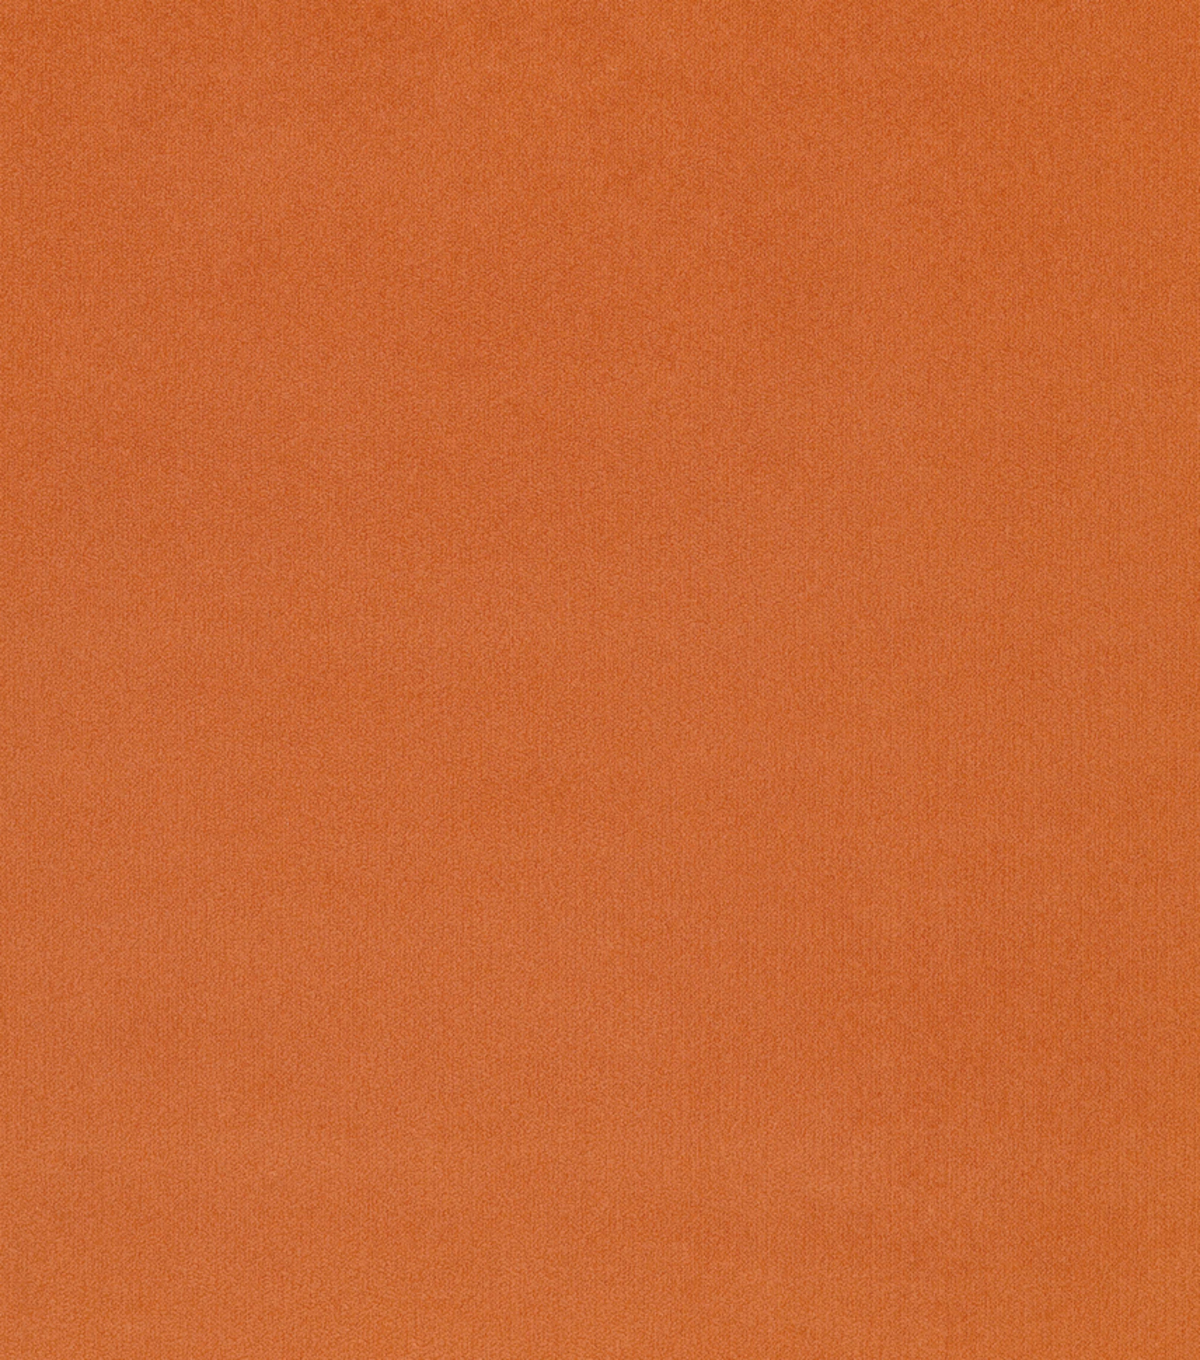 Home Decor 8\u0022x8\u0022 Fabric Swatch-Sedona Pumpkin